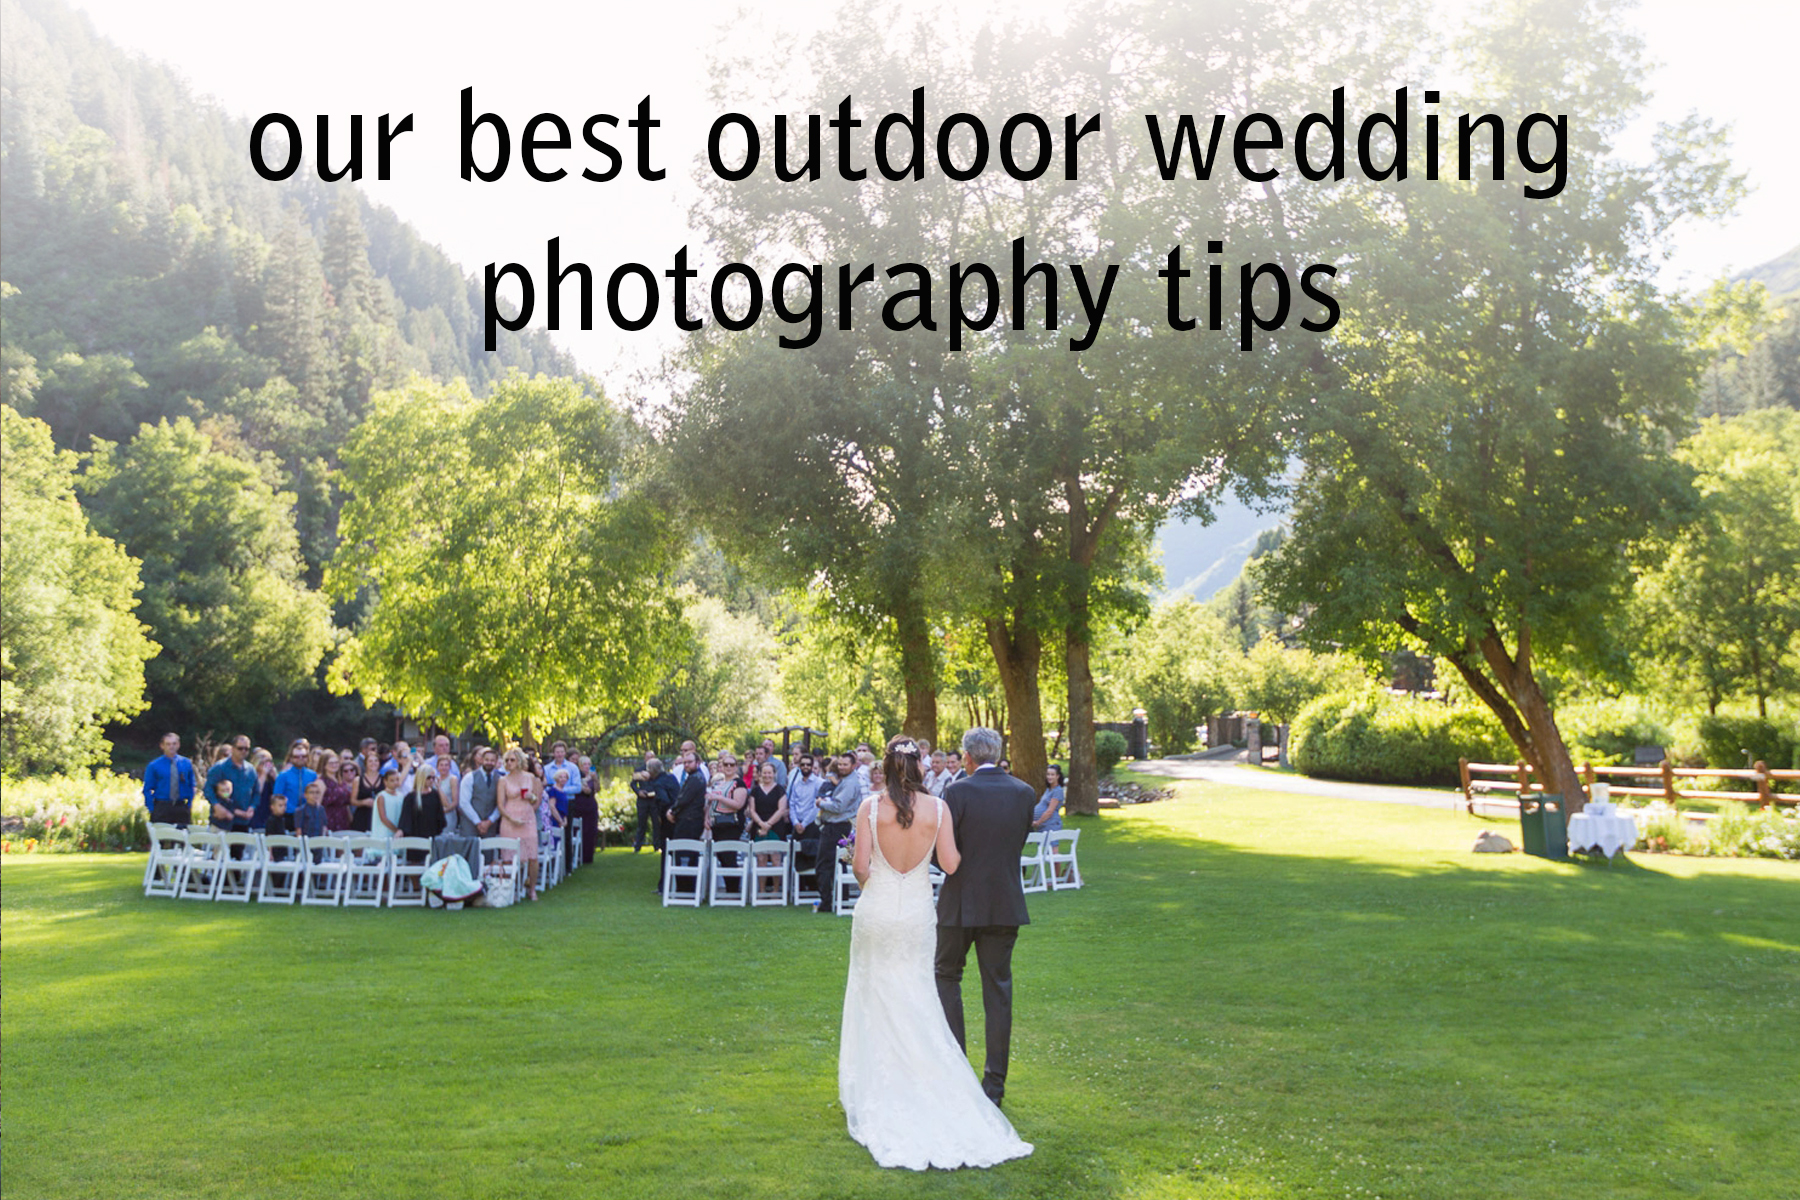 Outdoor Photography Wedding: Our 9 Best Outdoor Wedding Photography Tips